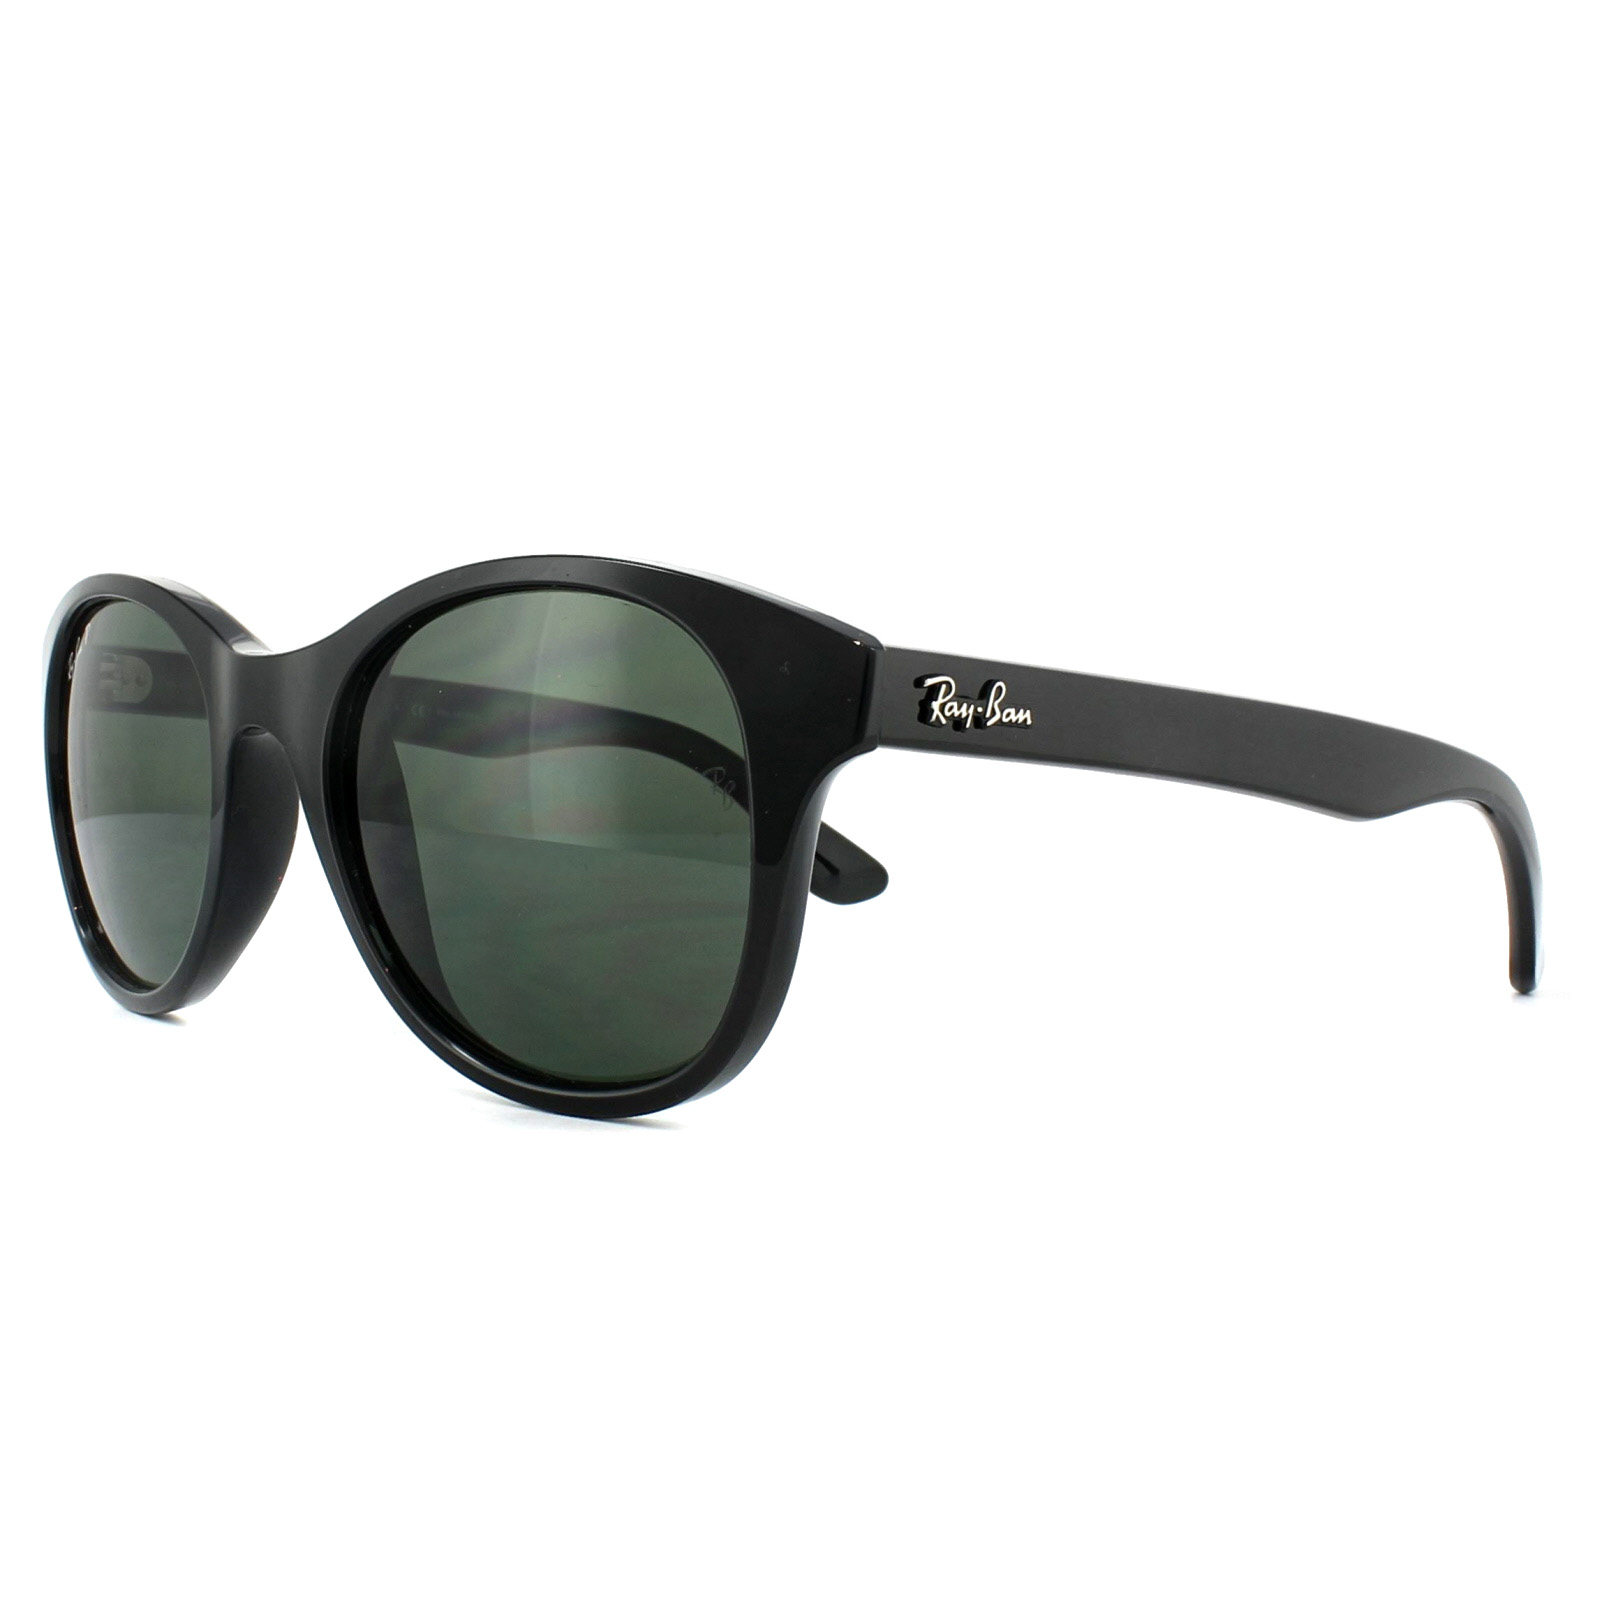 1b750deb786 Ray-Ban Sunglasses 4203 601 58 Black Green Polarized 8053672191721 ...